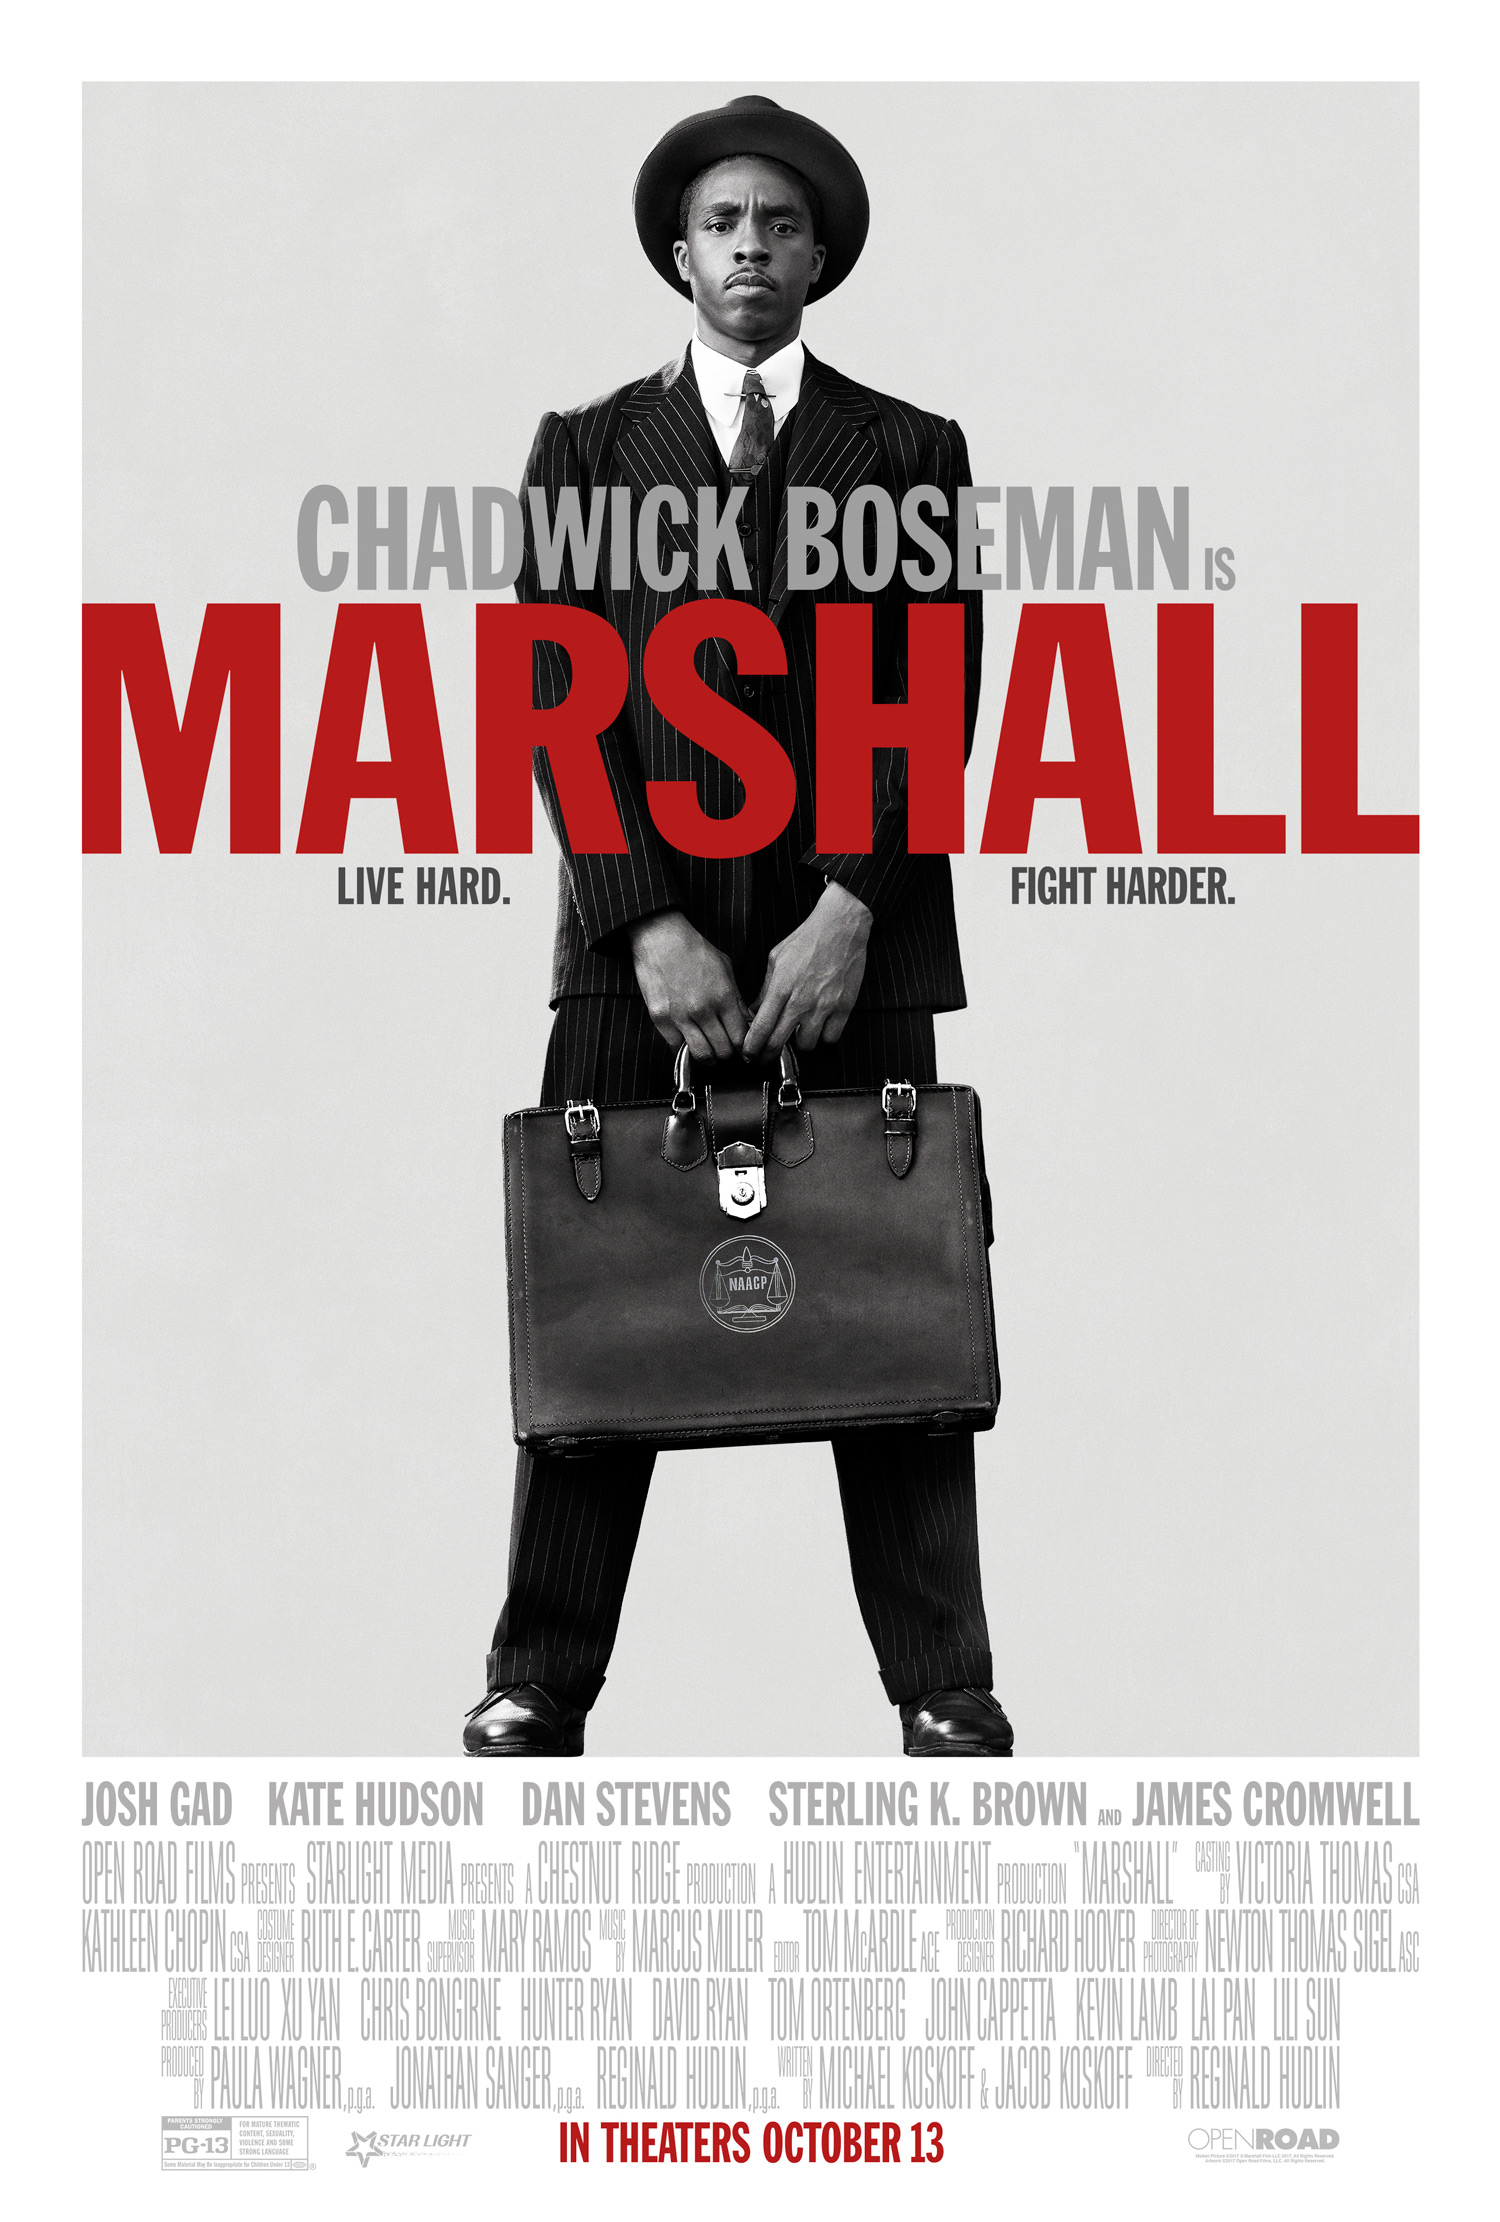 MARSHALL-FINAL_ONE_SHEET_R2_1.jpg